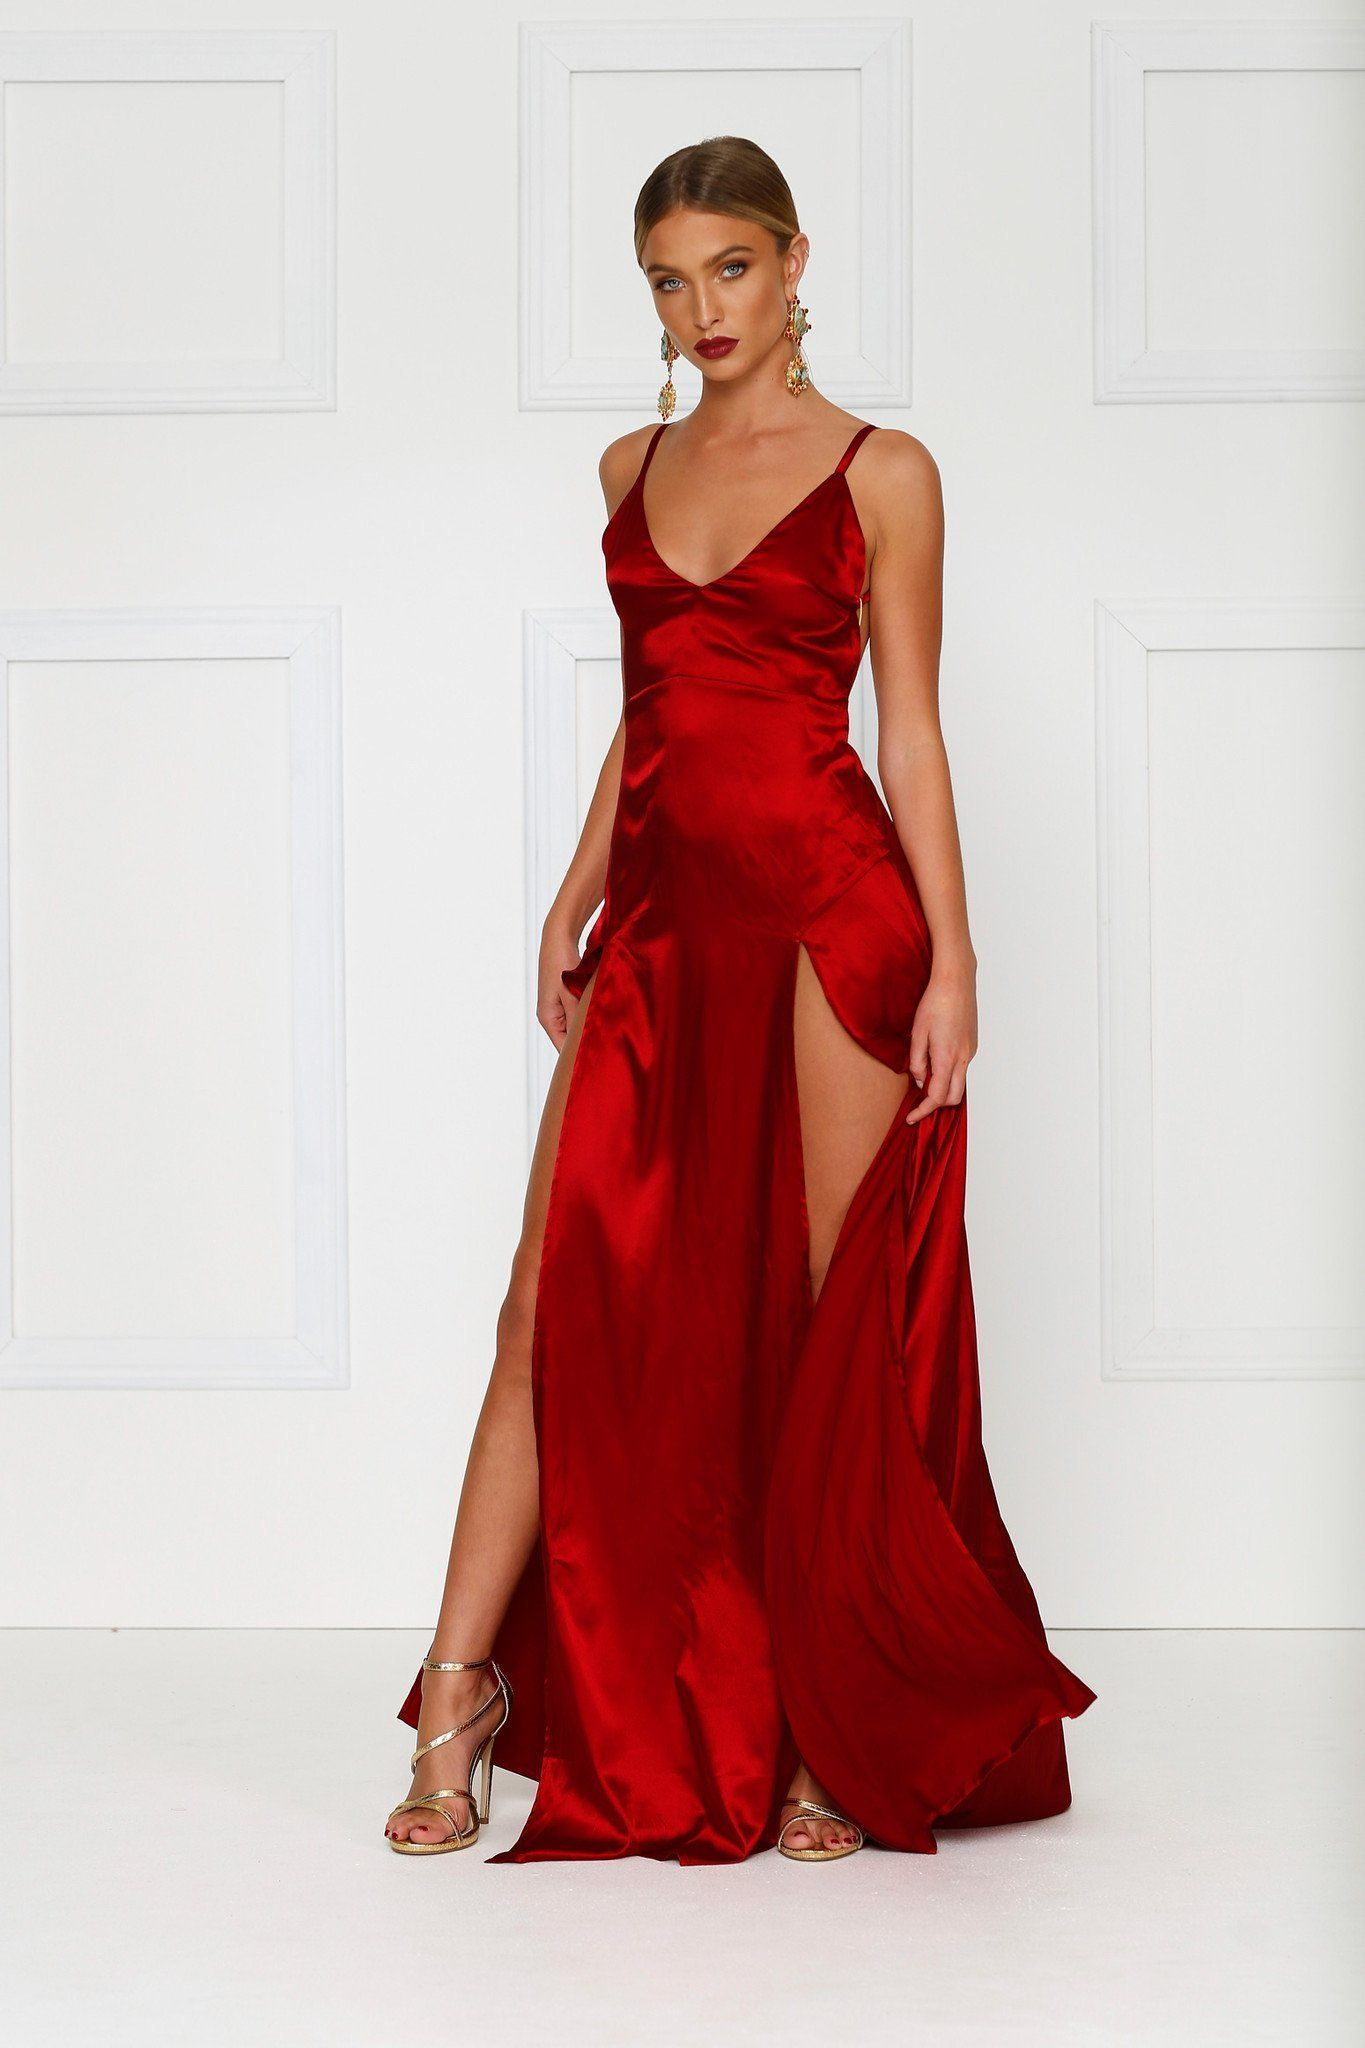 d83480bbc8 Alexis Dress - Wine Red Satin V Neck Side Slit Maxi Low Back Gown